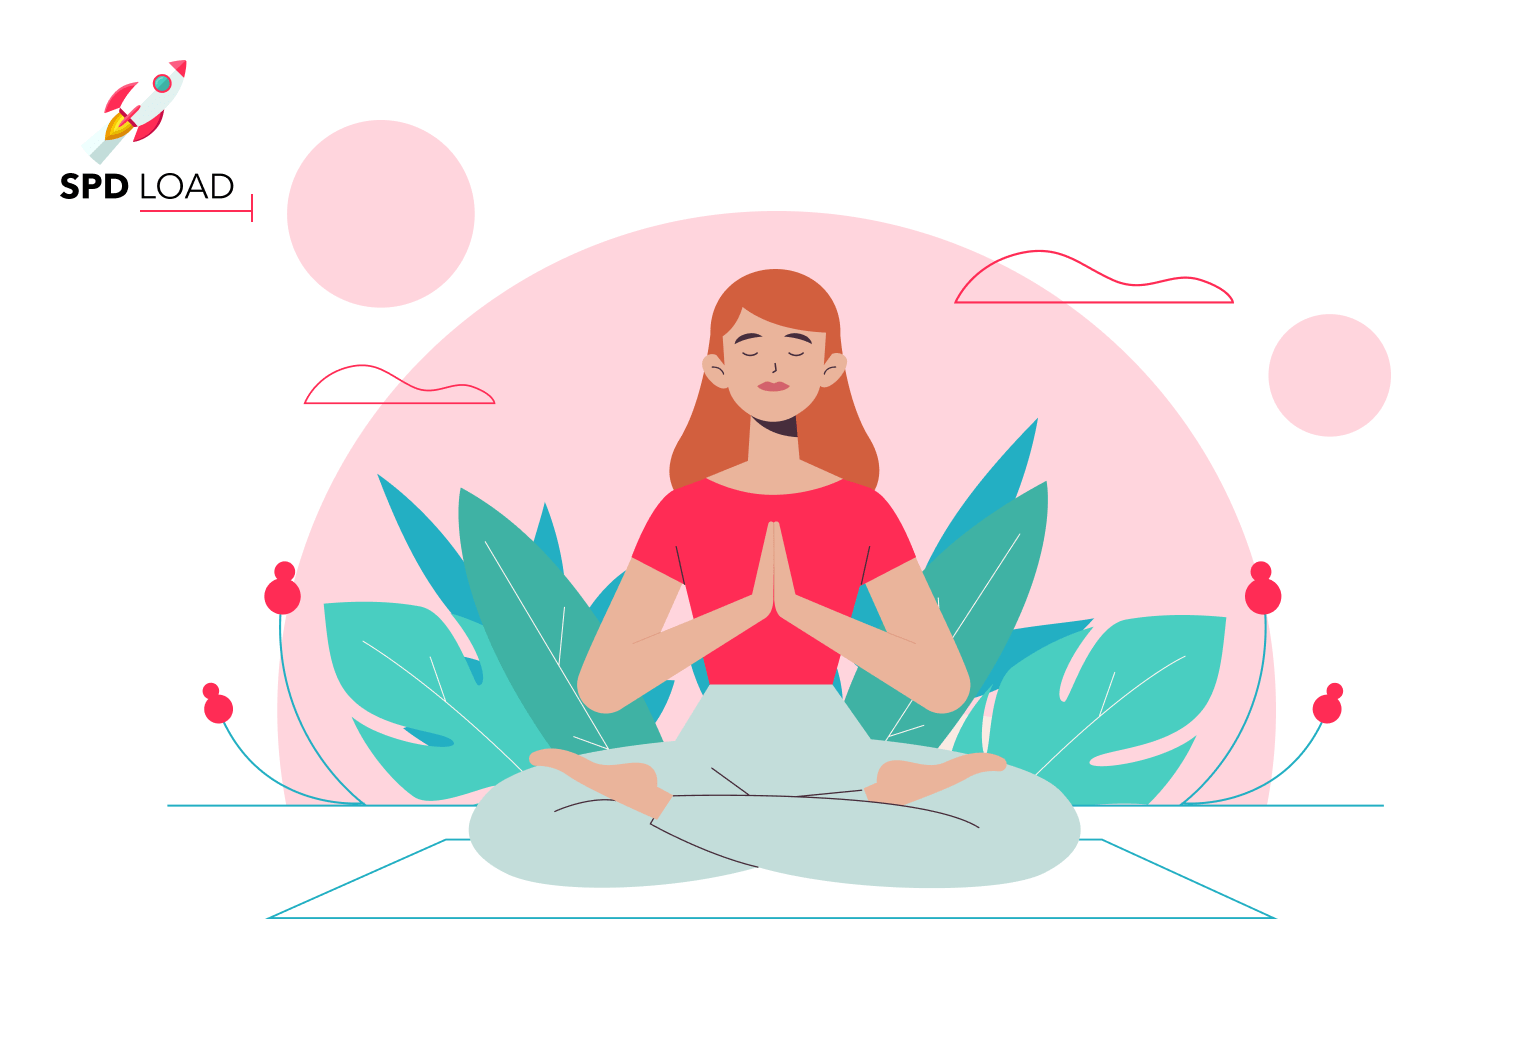 SpdLoad team prepared an in-depth guide on meditation app development for first-time founders